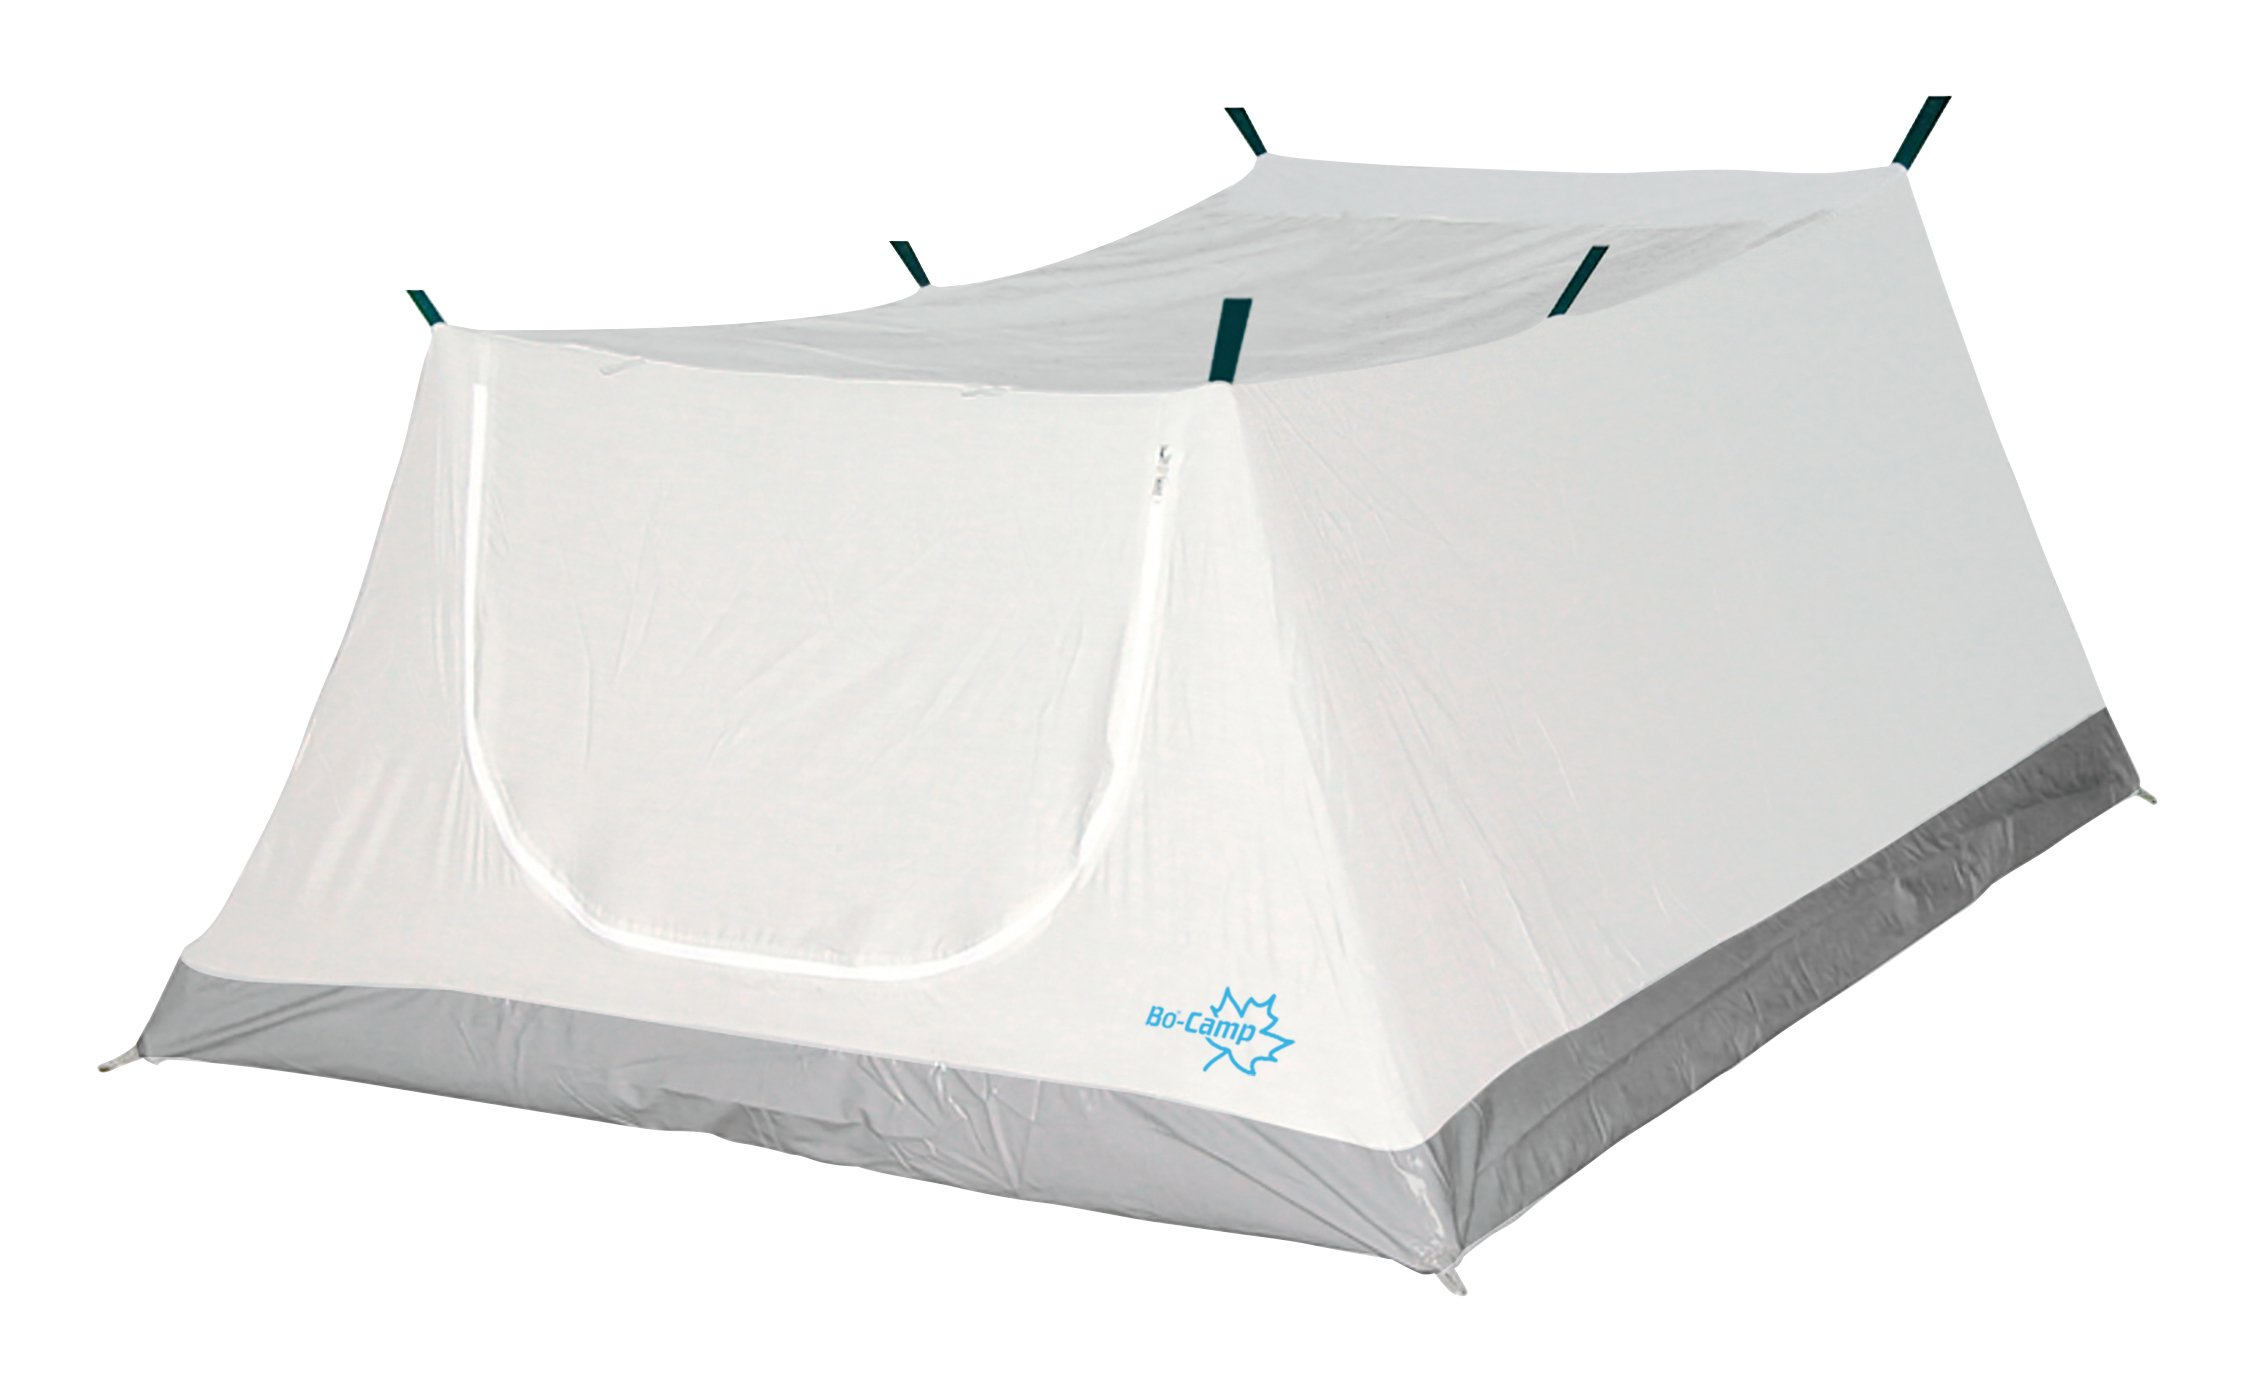 Bo-Camp Indoor Tent for Extension 1